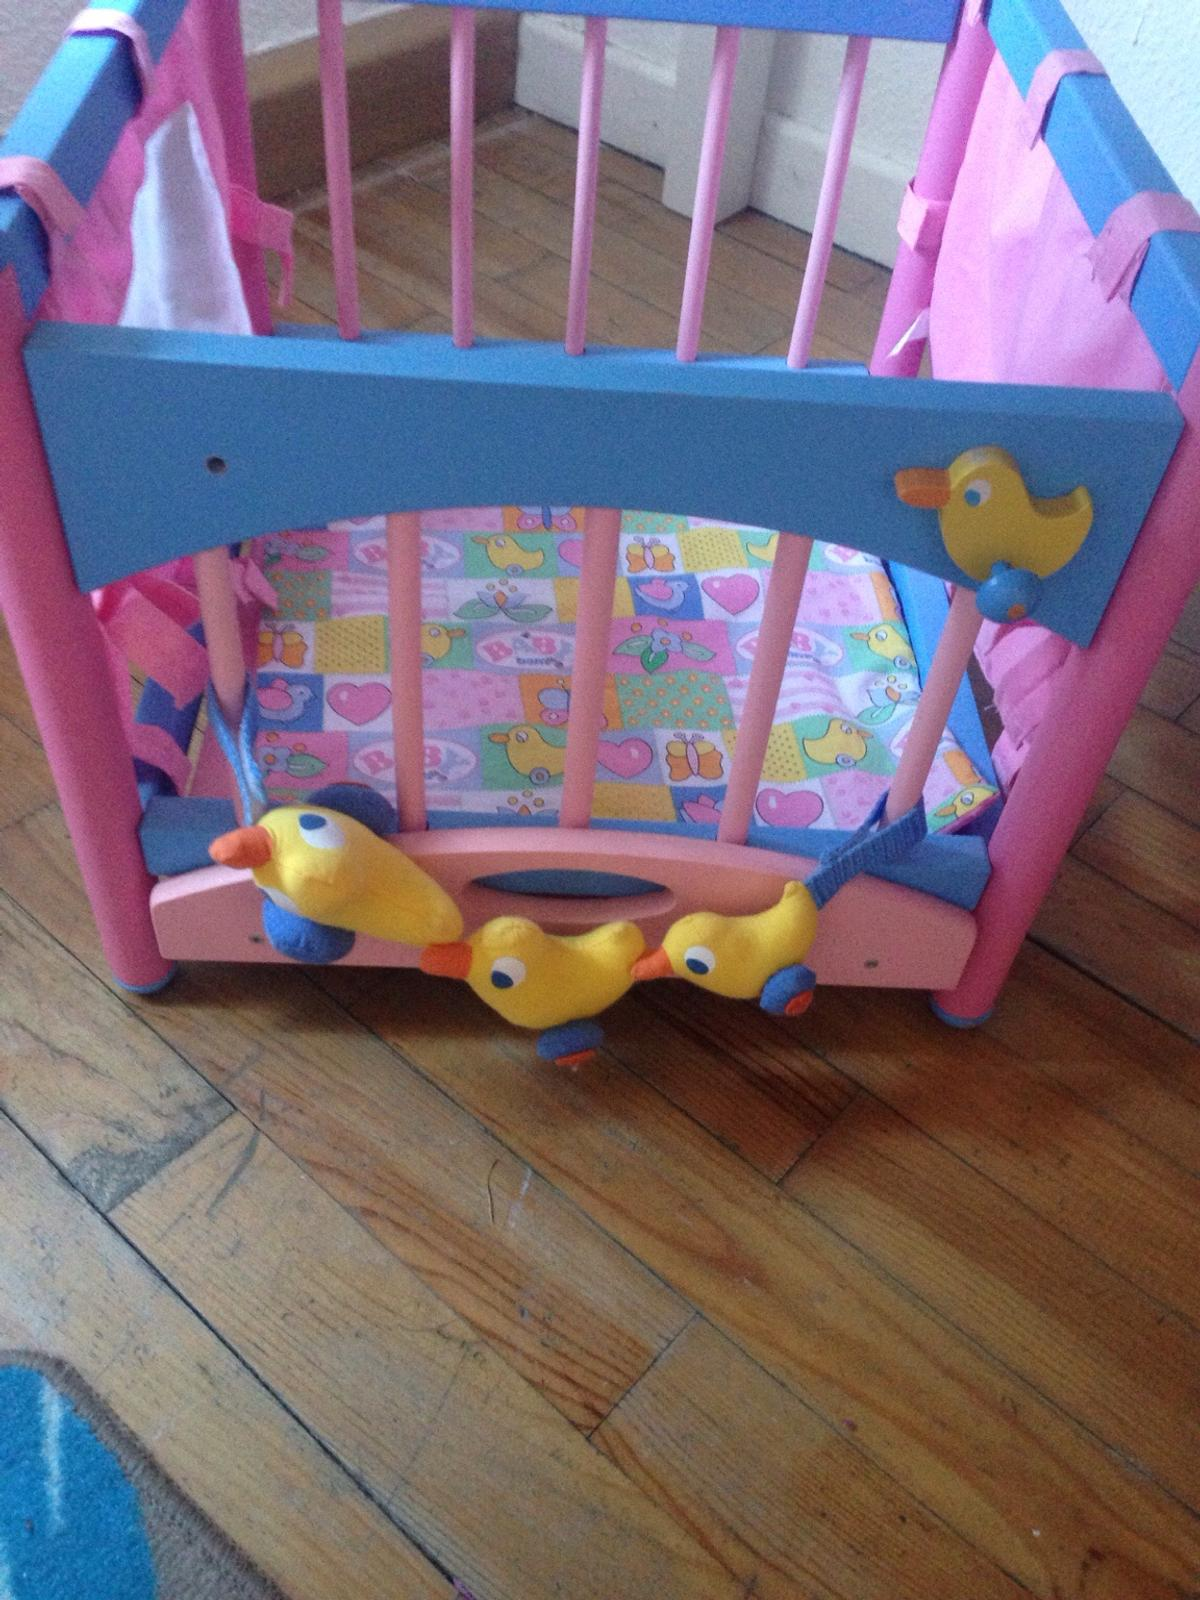 Baby Born Laufstall in 66606 Sankt Wendel for €15.00 for sale - Shpock